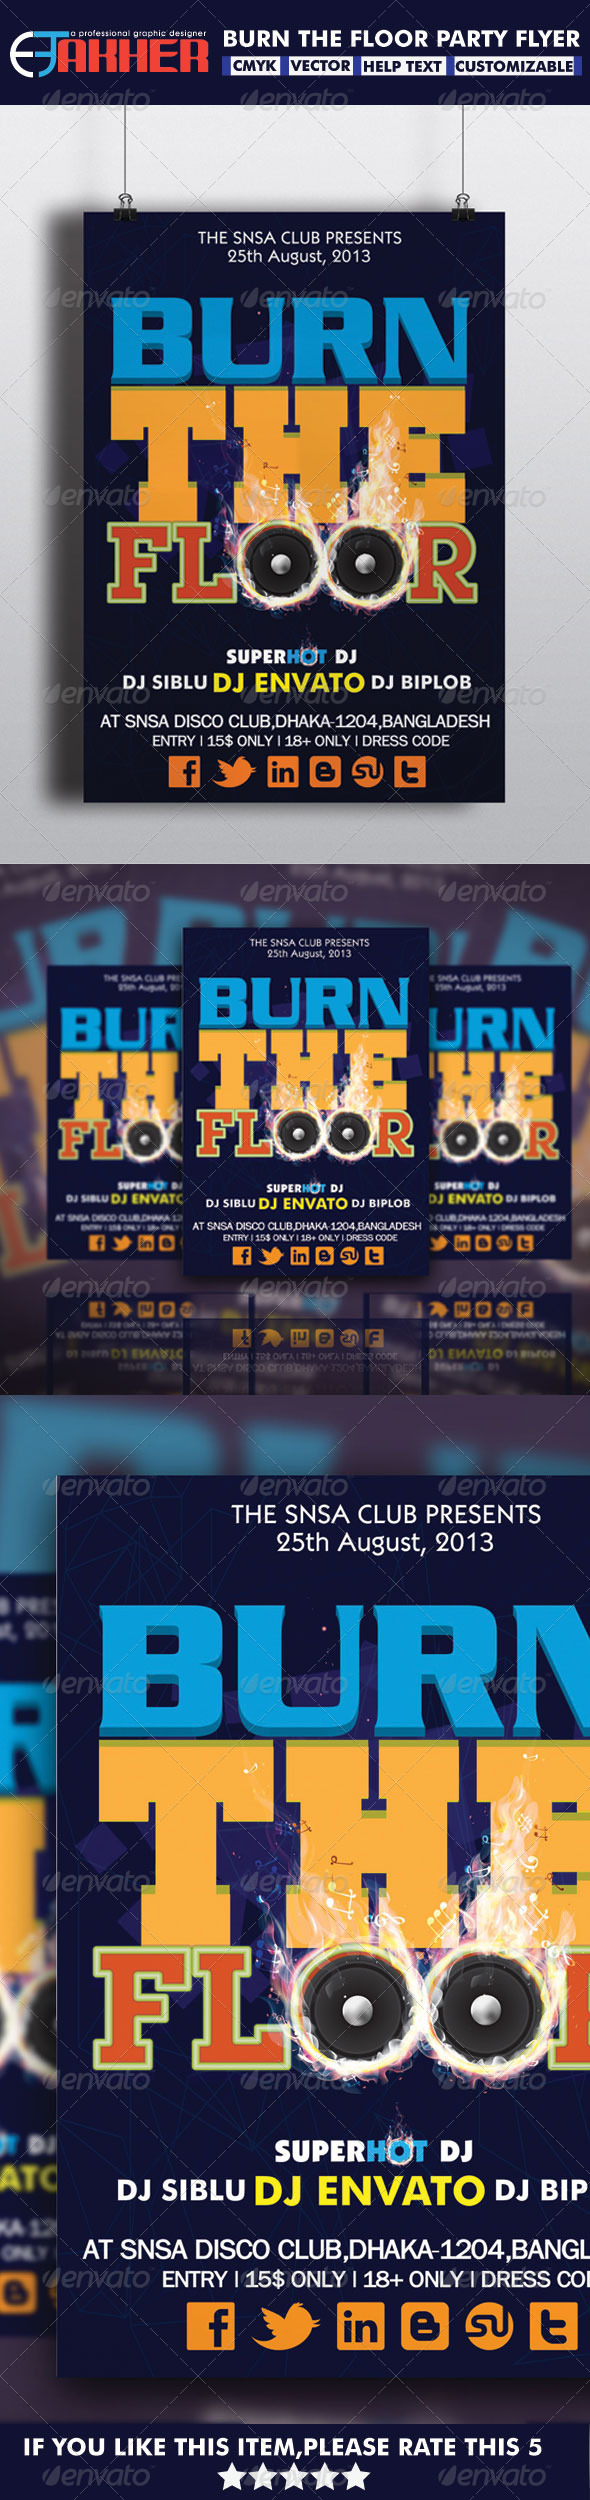 GraphicRiver Burn The Floor Party Flyer 5468472